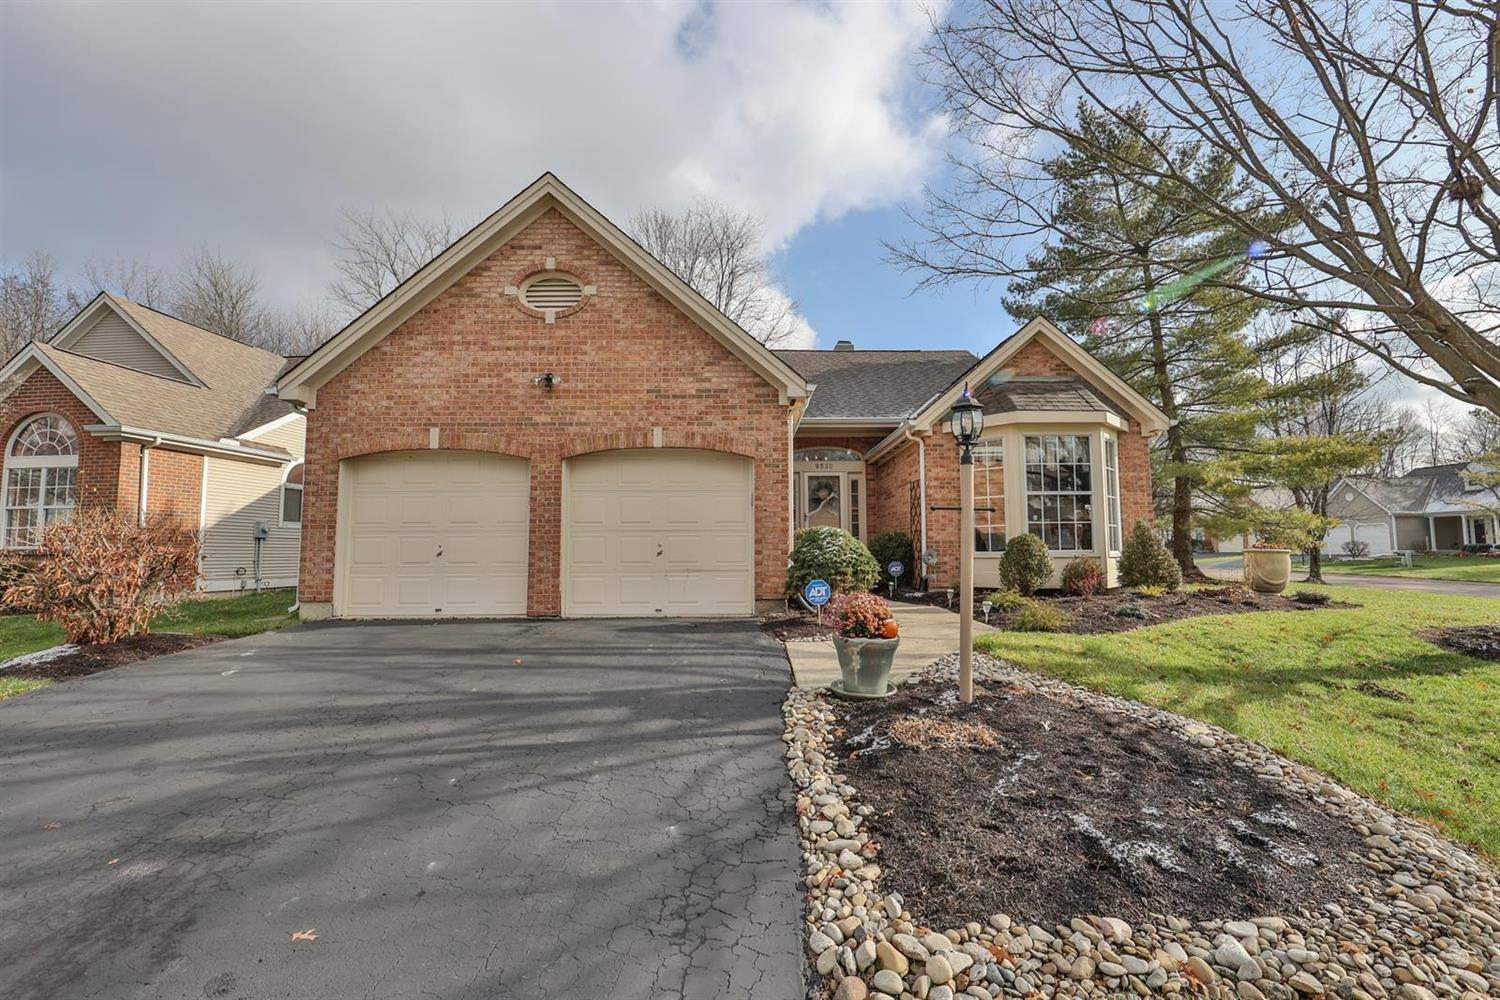 Property for sale at 9530 Carriage Run, Deerfield Twp.,  Ohio 45140